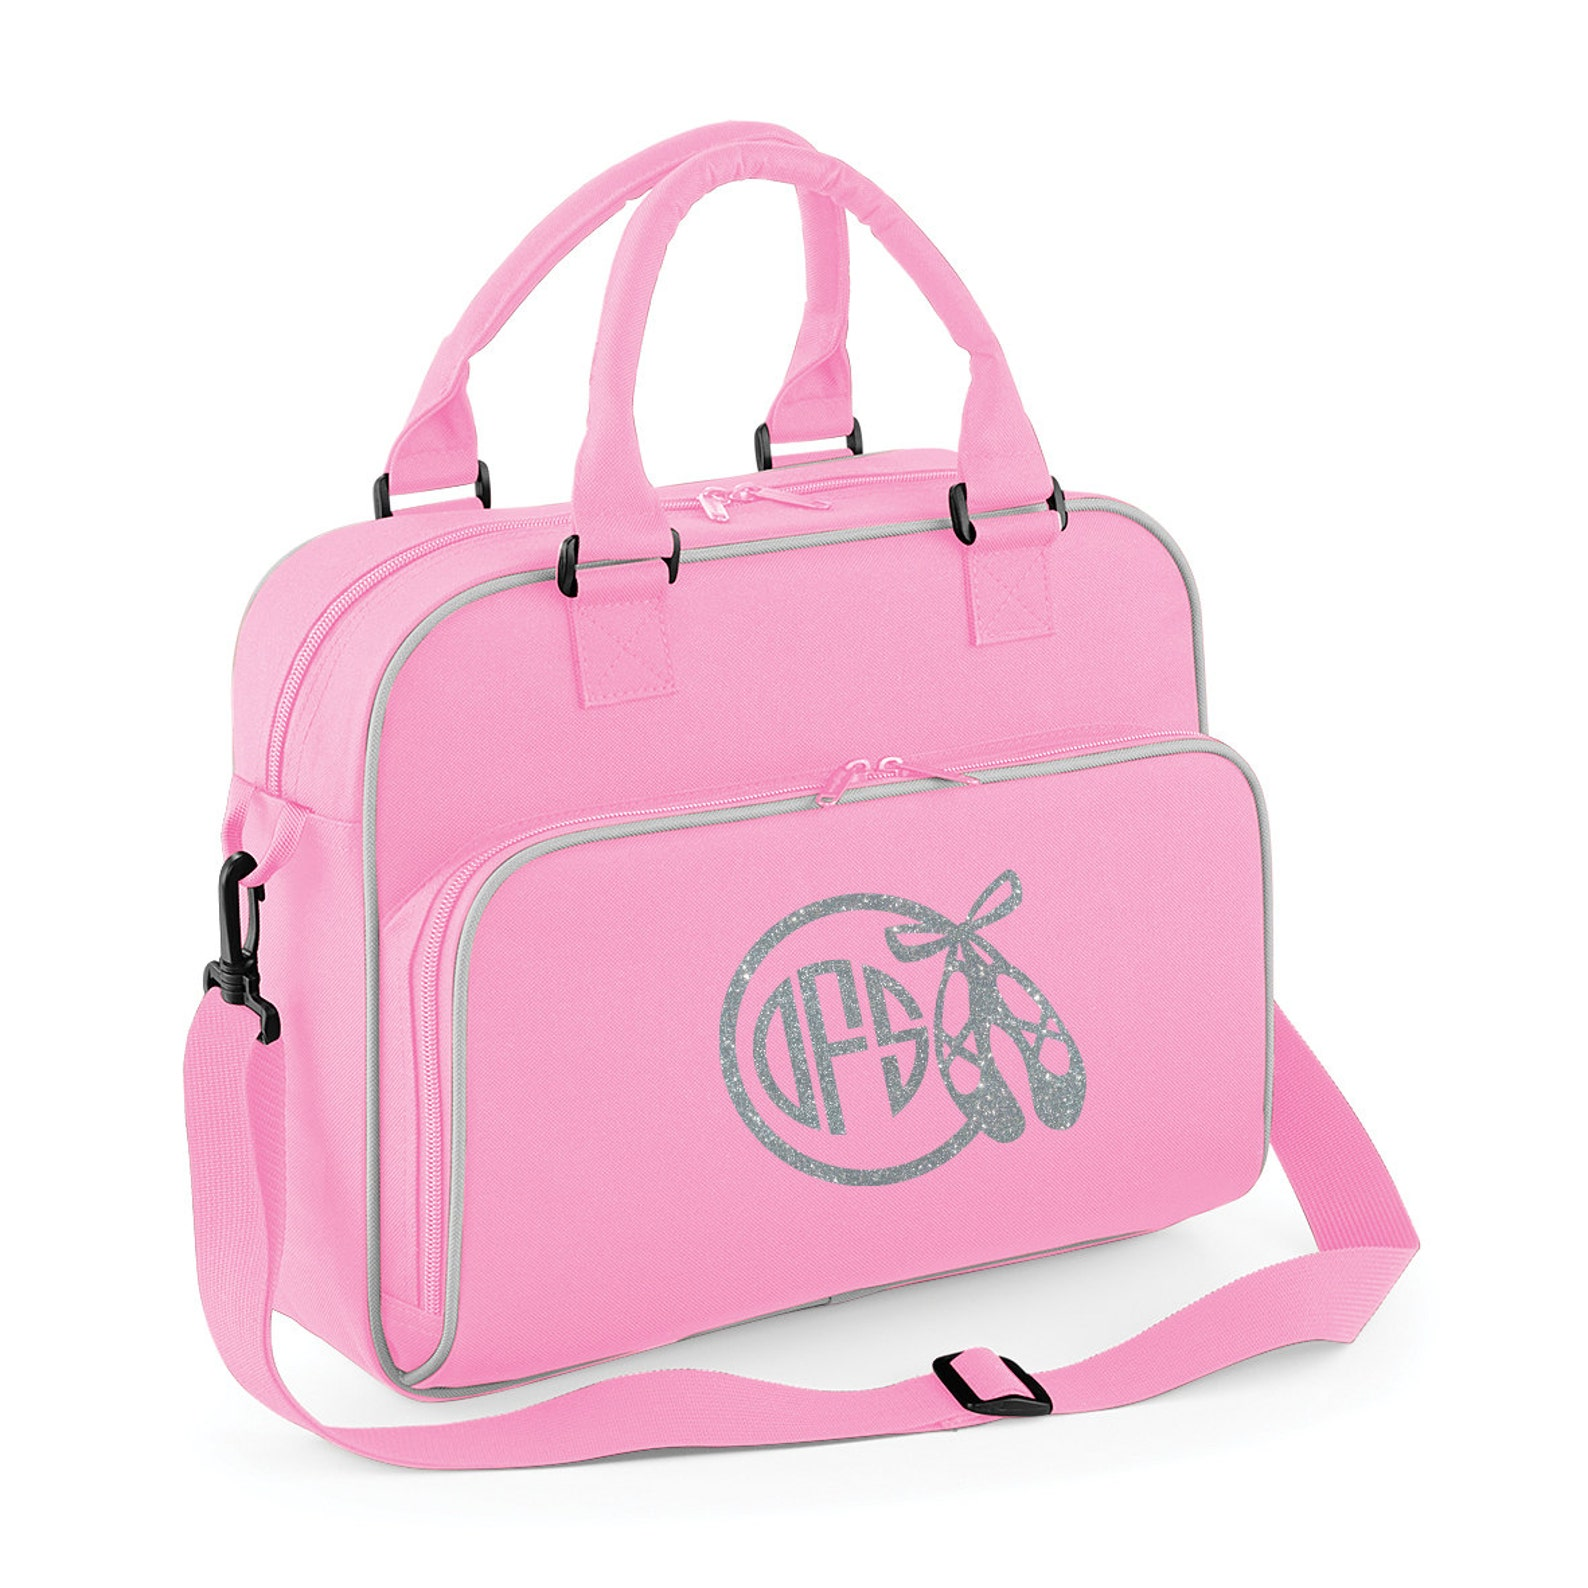 personalised junior ballet dance bag- glitter print with ballet image and monogram name- image 5 personalized ballet bag